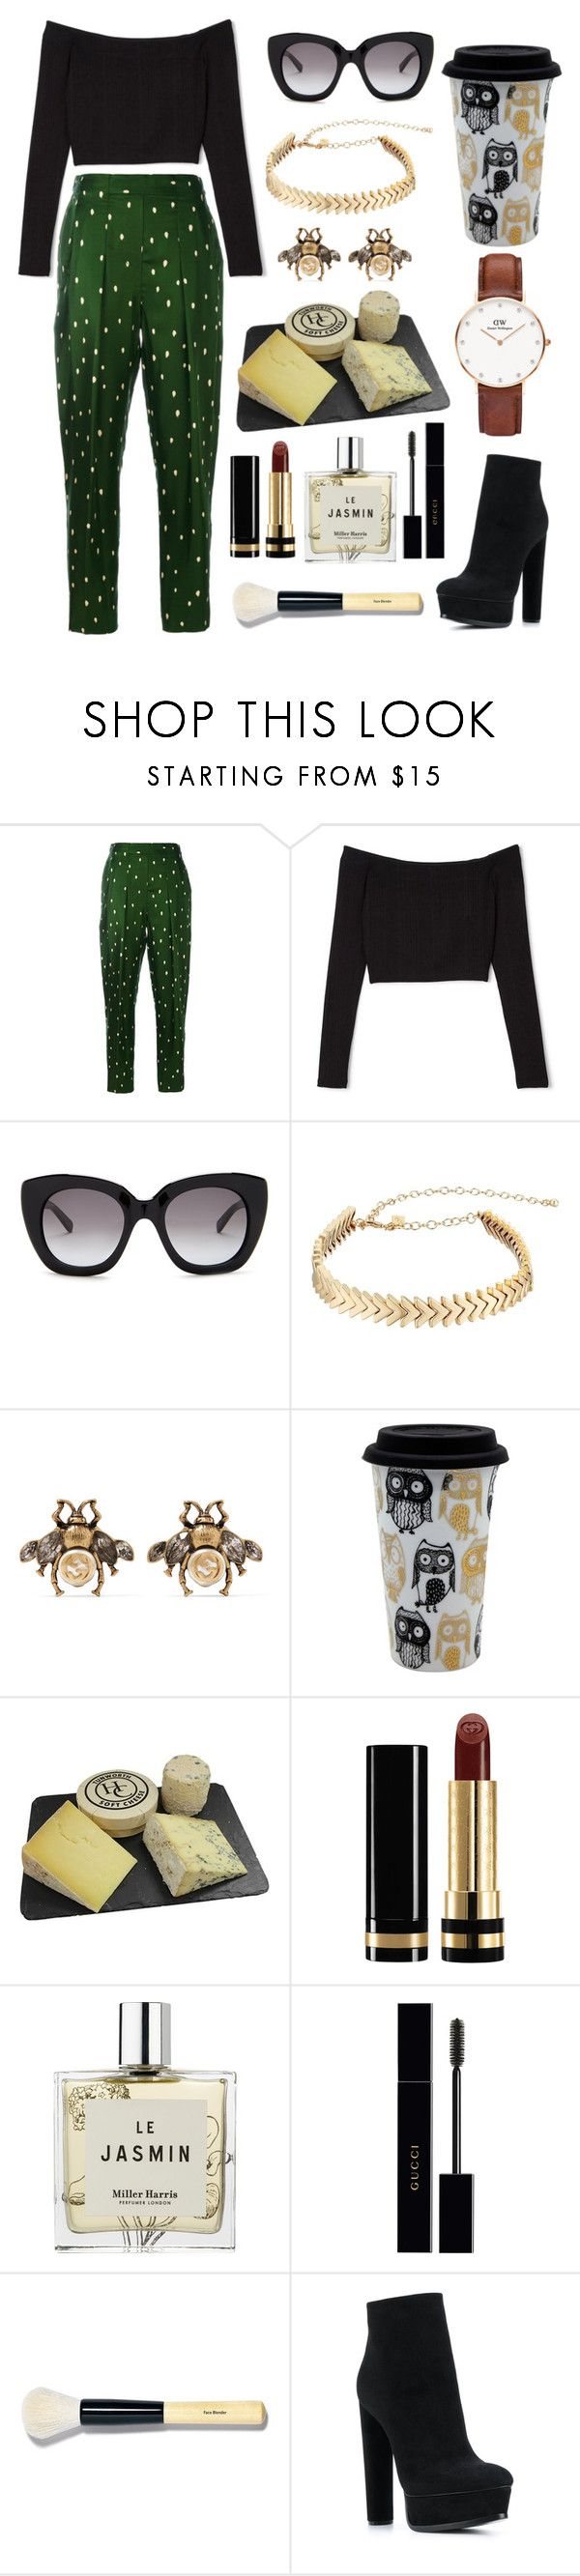 """""""Fancy Pants"""" by alissapovar ❤ liked on Polyvore featuring 3.1 Phillip Lim, Kate Spade, Rebecca Minkoff, Gucci, TMD, Miller Harris, Bobbi Brown Cosmetics, Casadei and Daniel Wellington"""